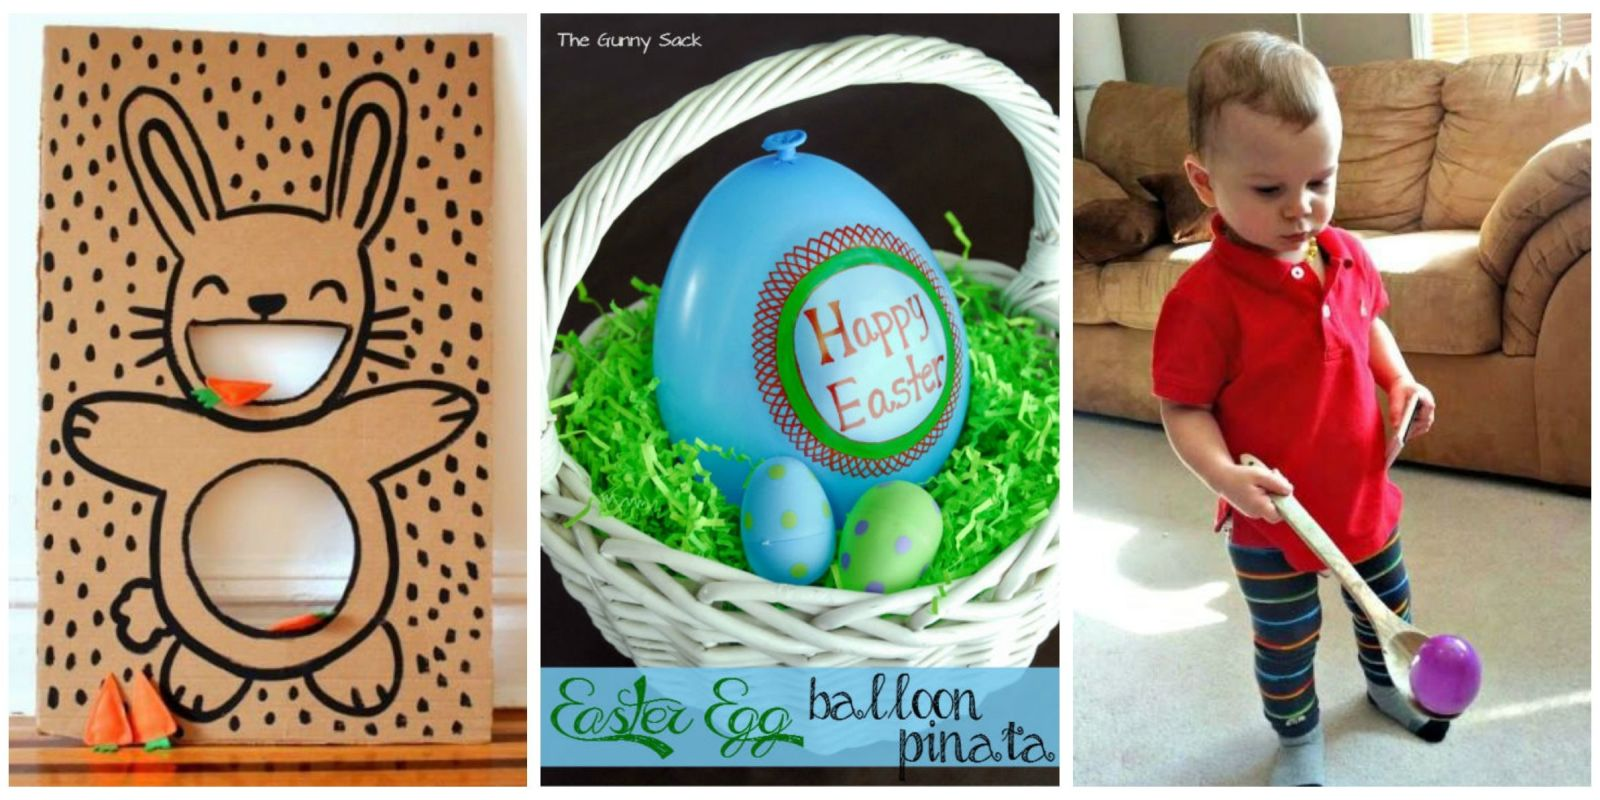 21 Fun Easter Games For Kids   Best Easter Sunday Activities For Children